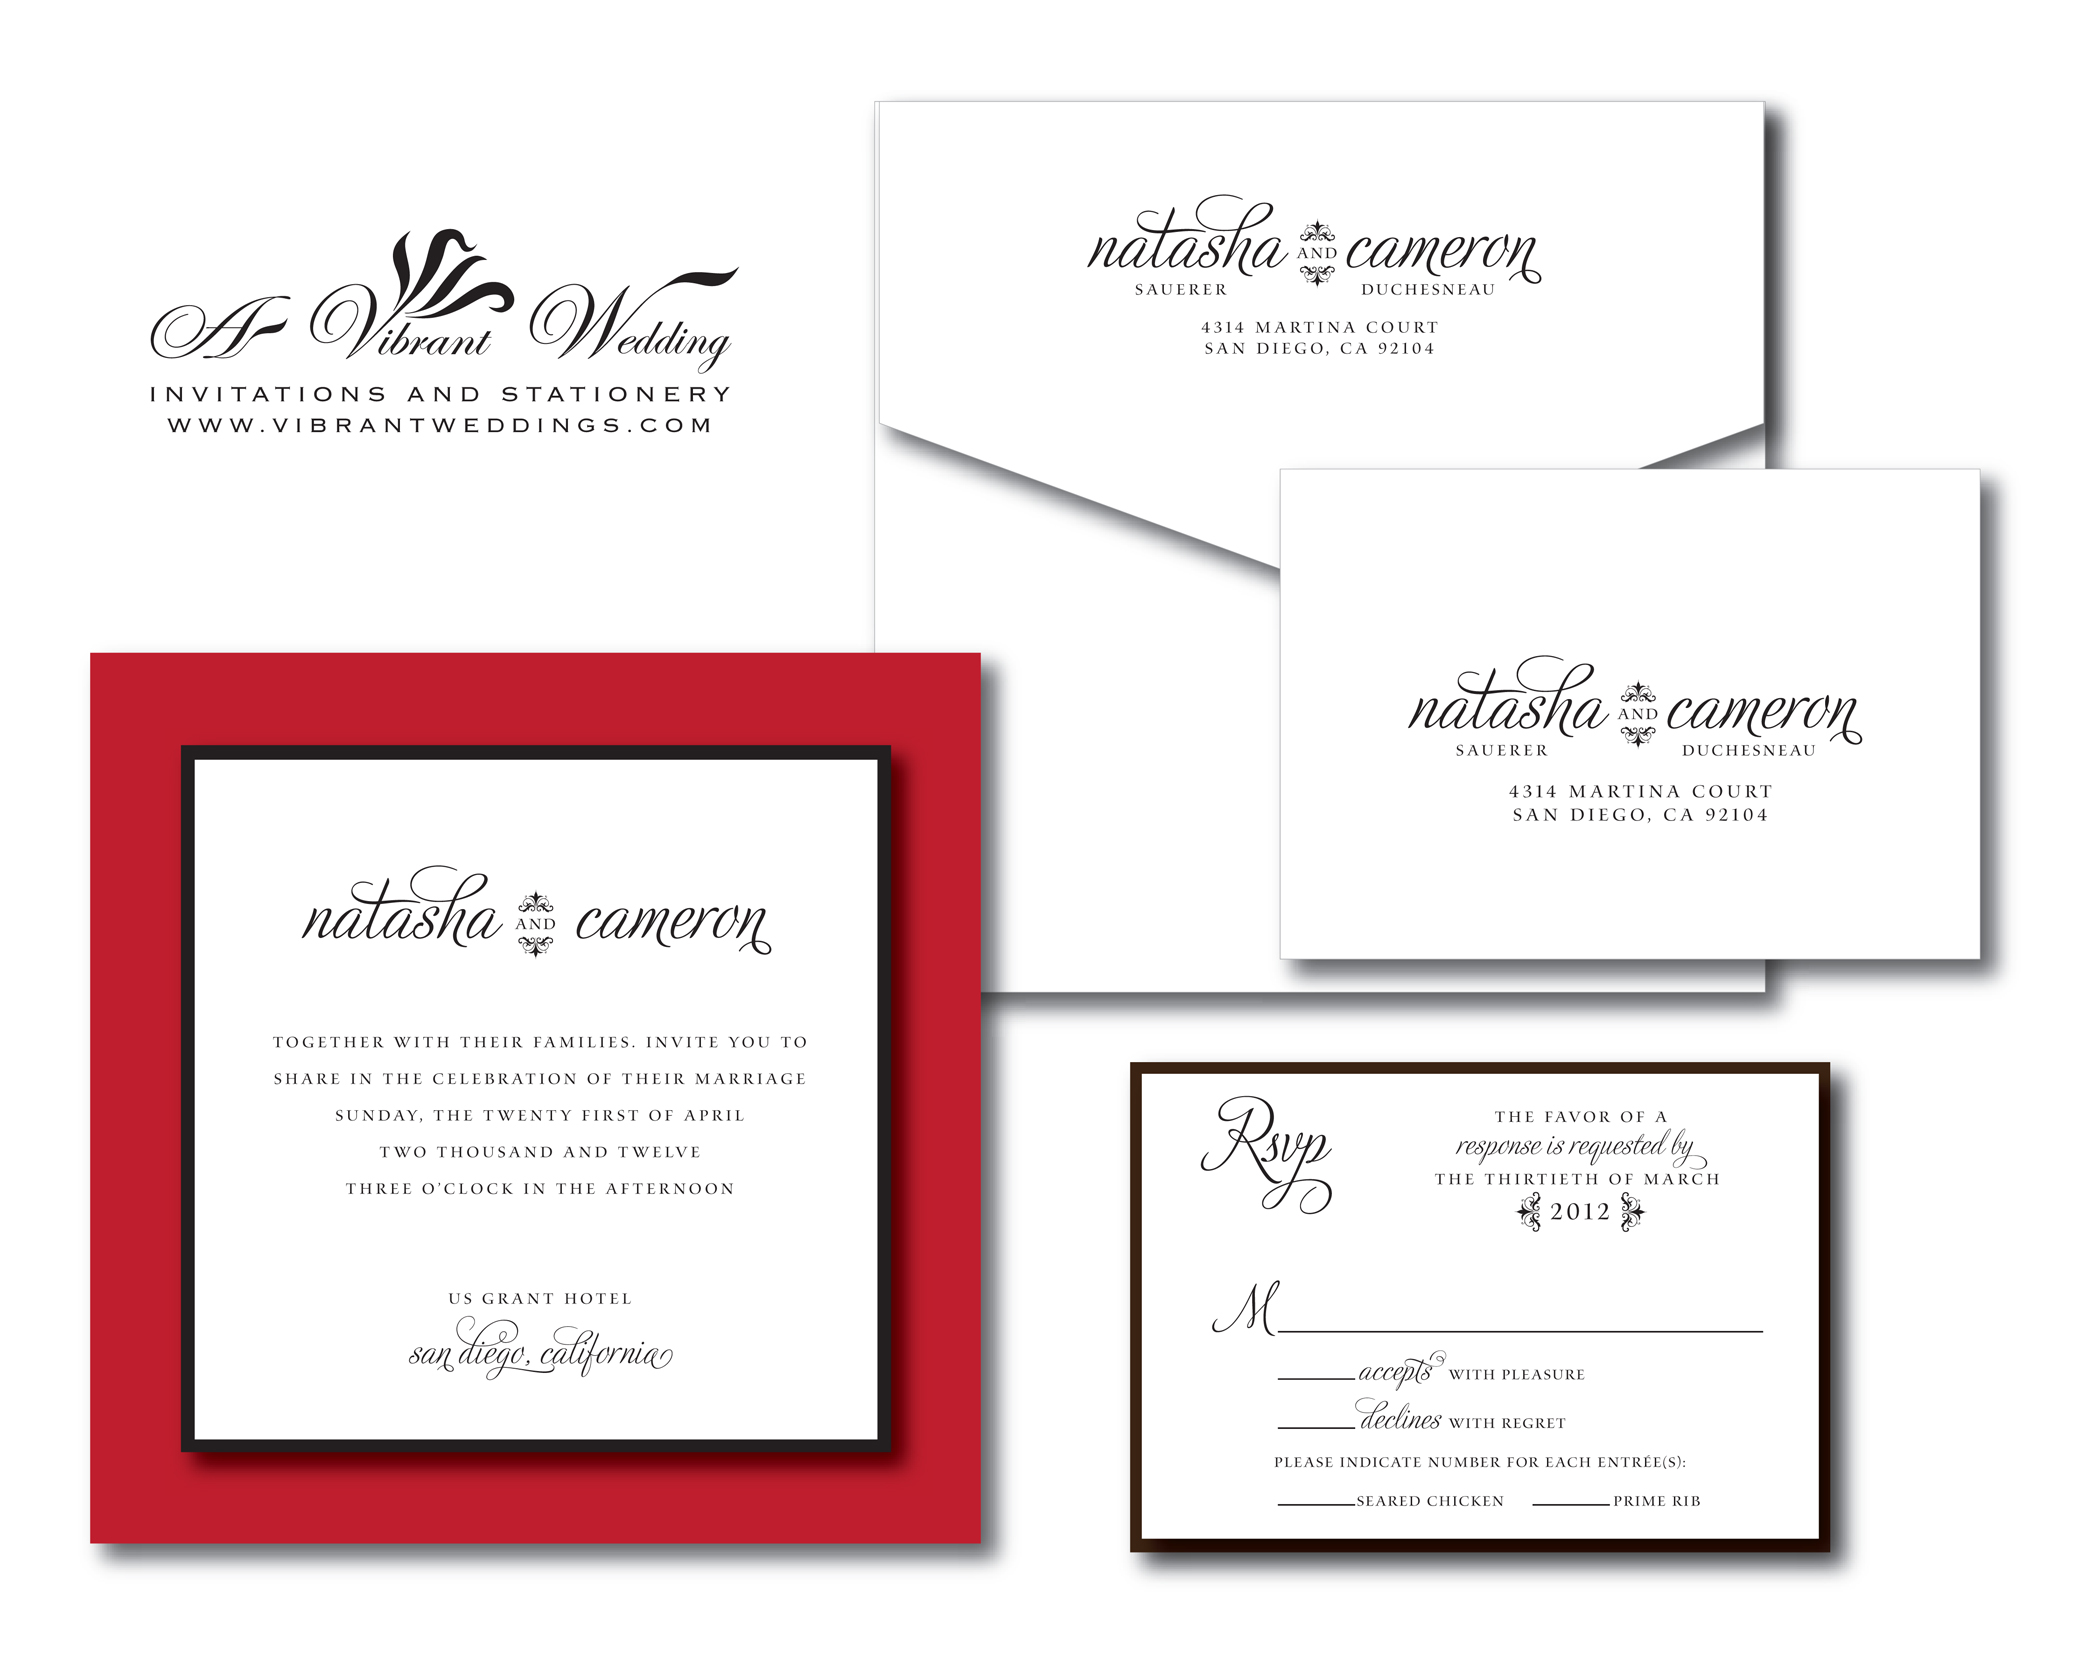 Red Wedding invitation – A Vibrant Wedding Invitations